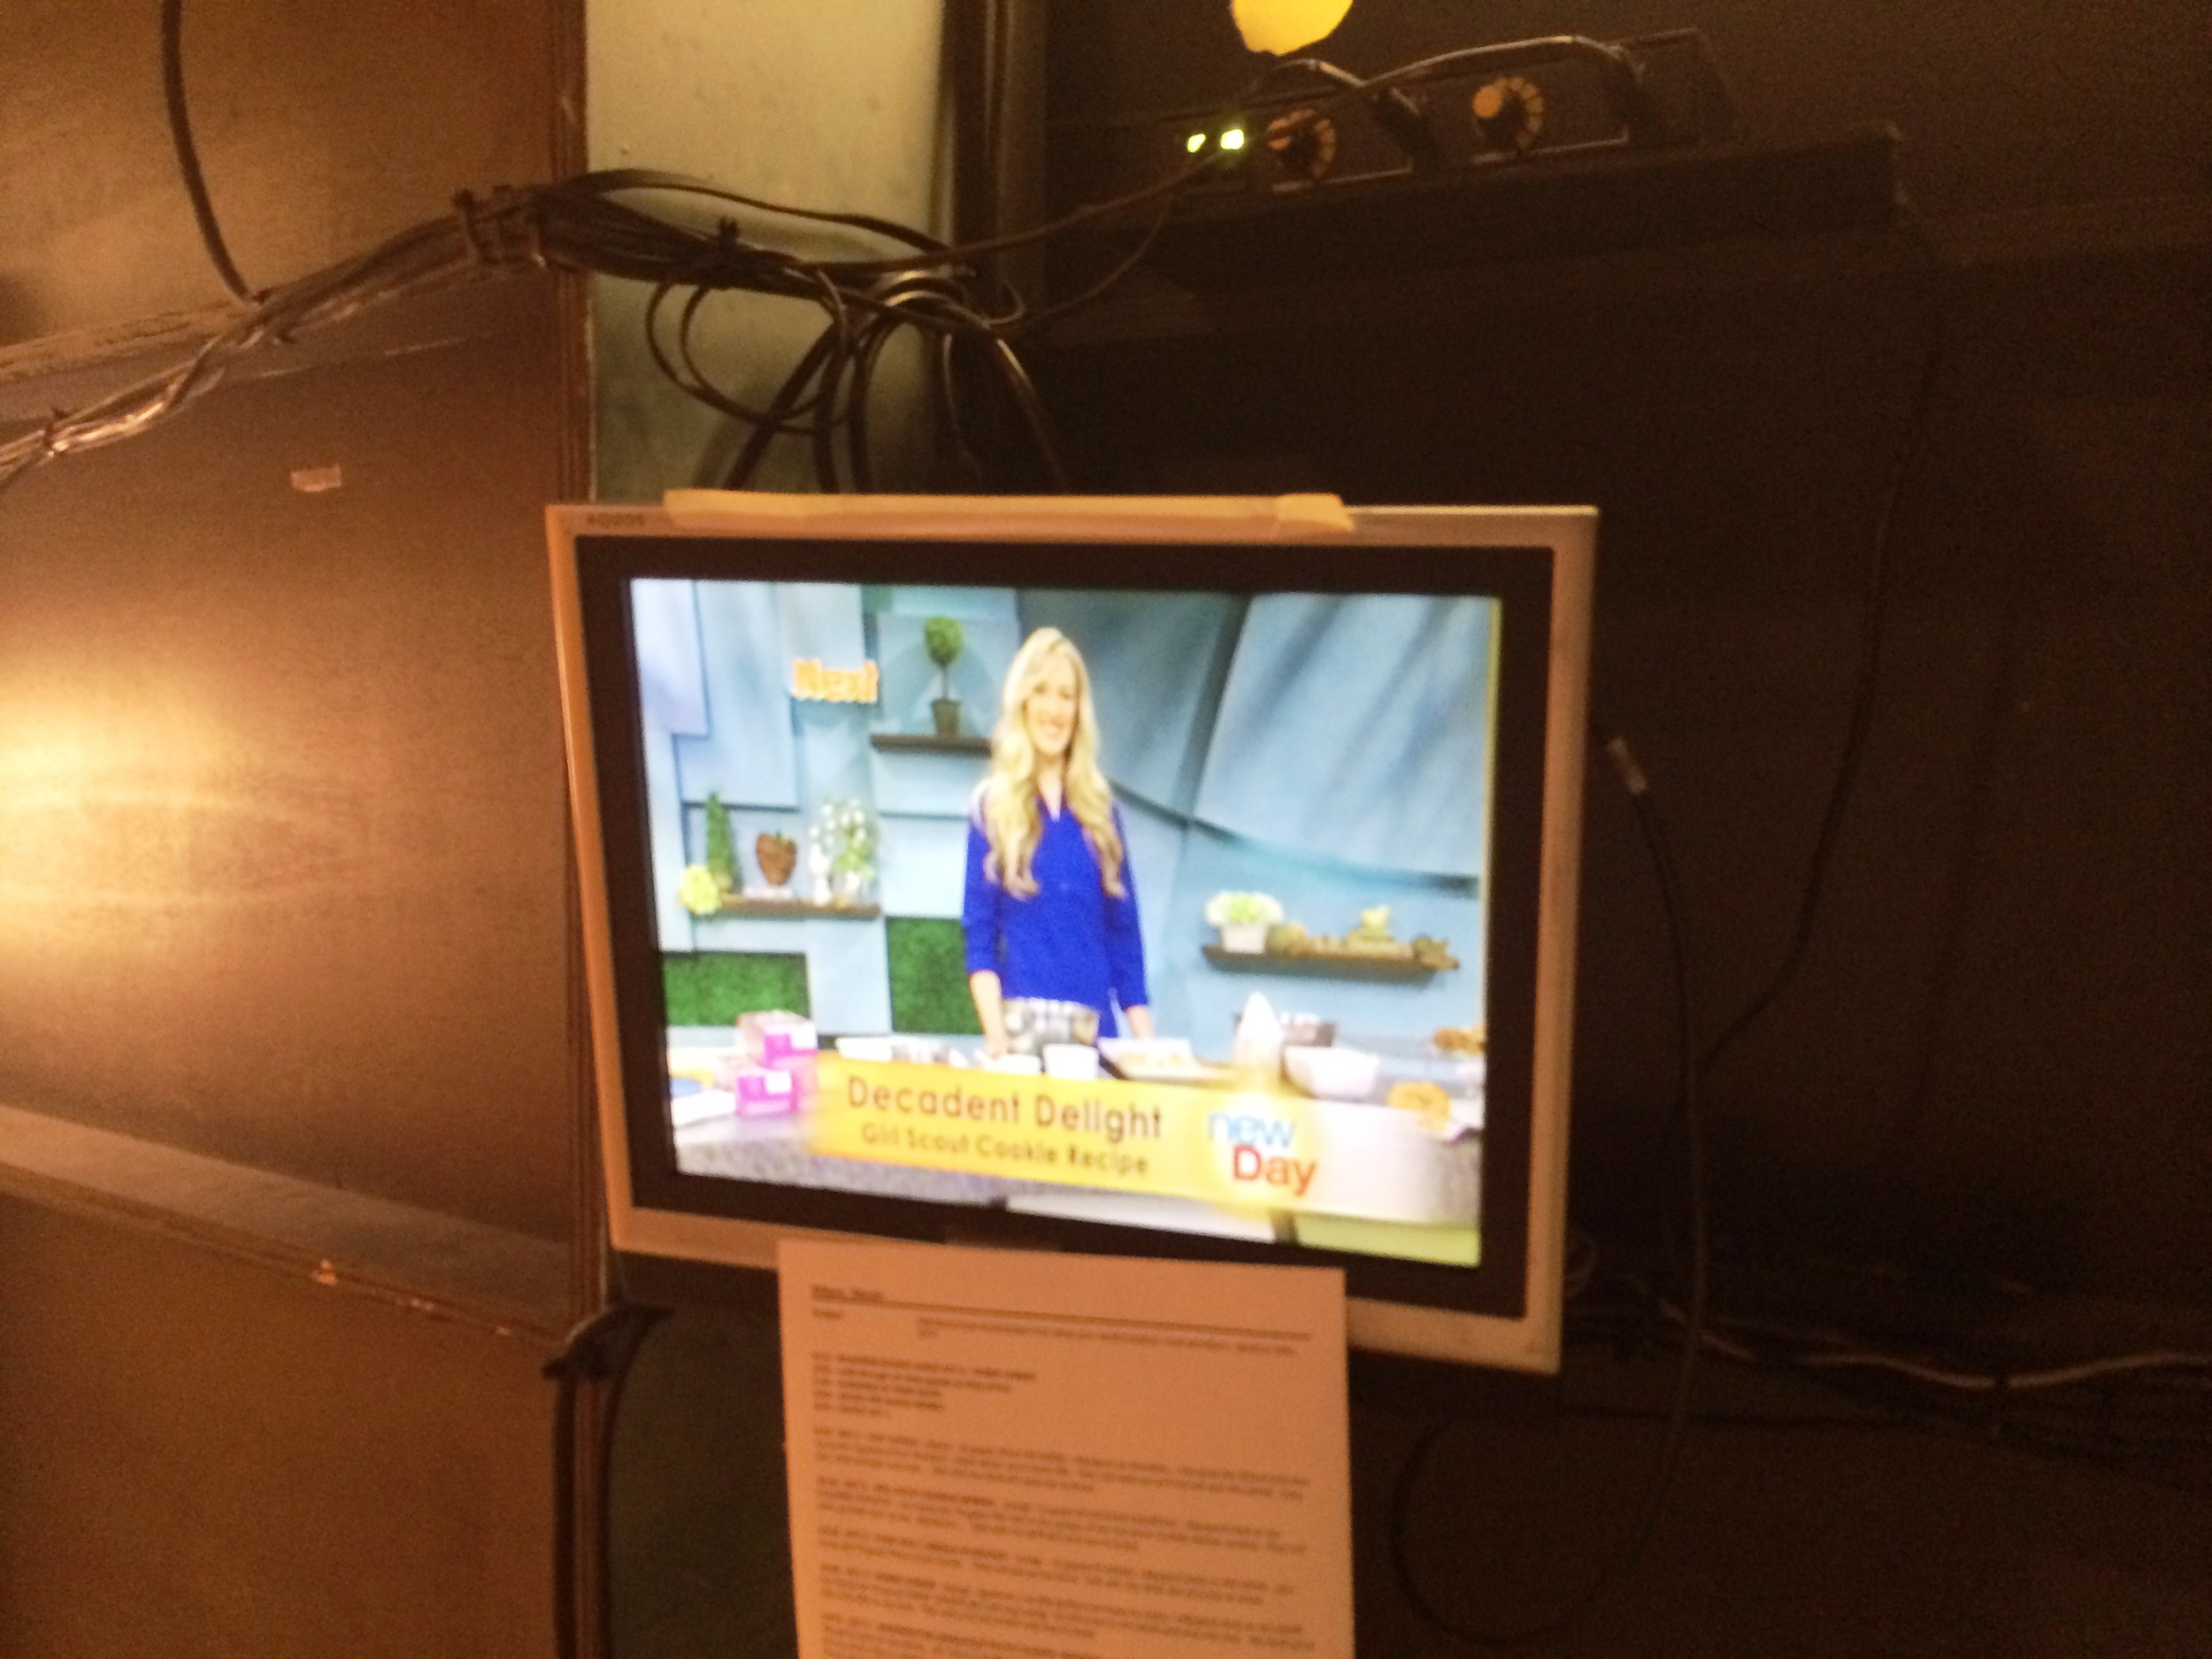 During the taping of a show, they do lead ins and teasers for the segment. This is from backstage, where you can watch on the monitor as the teaser is taped, and see what it looks like on TV.